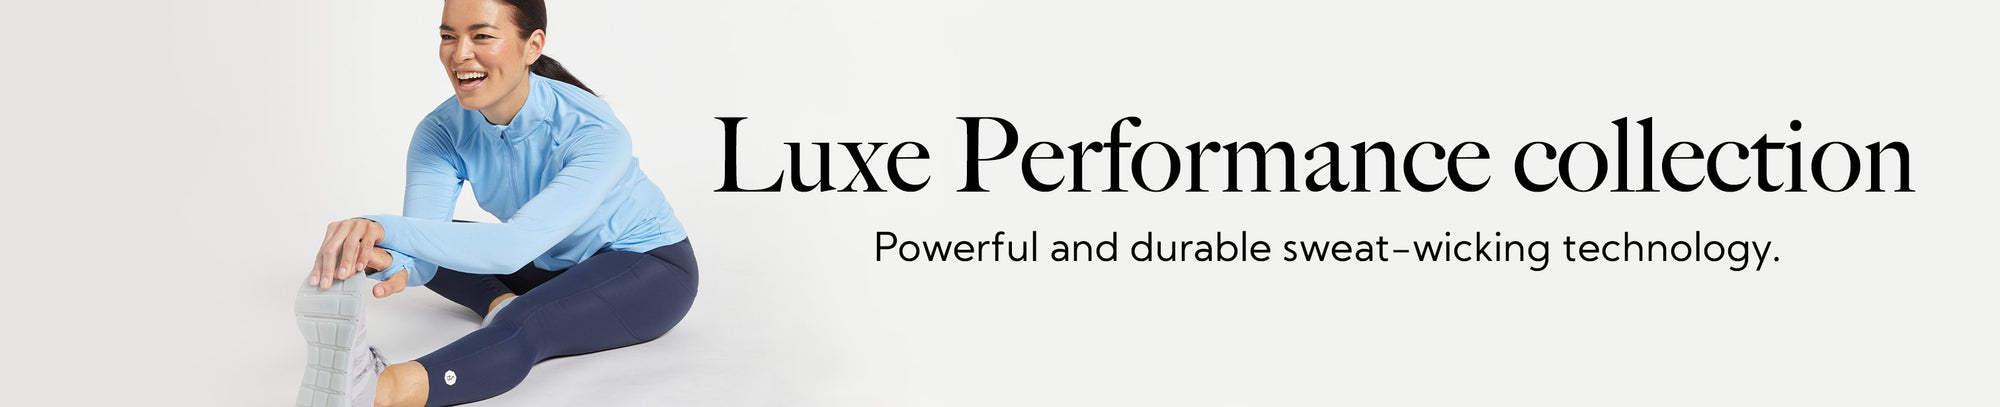 Luxe Performance Fabric Collection